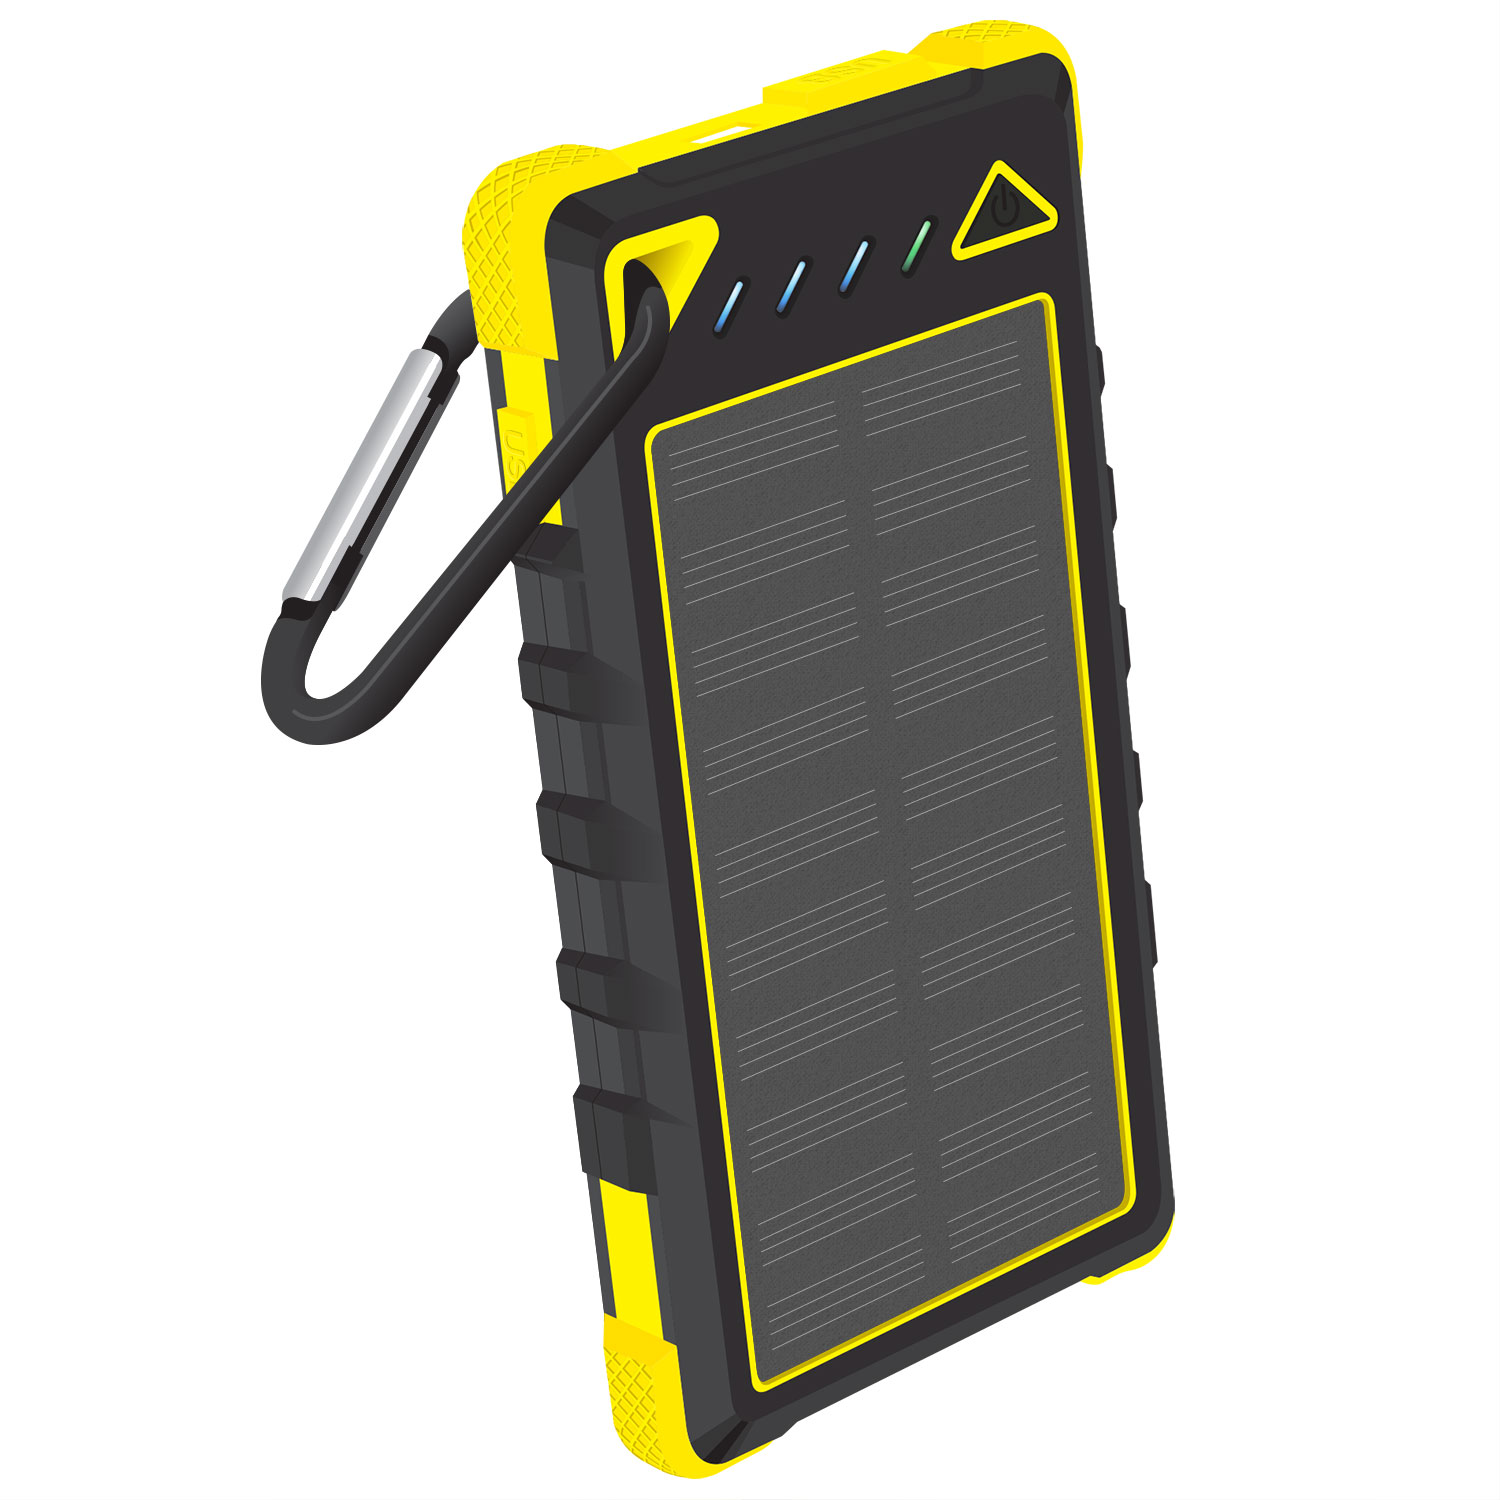 Nokia Lumia 520 Solar Powered Portable PowerBank Yellow